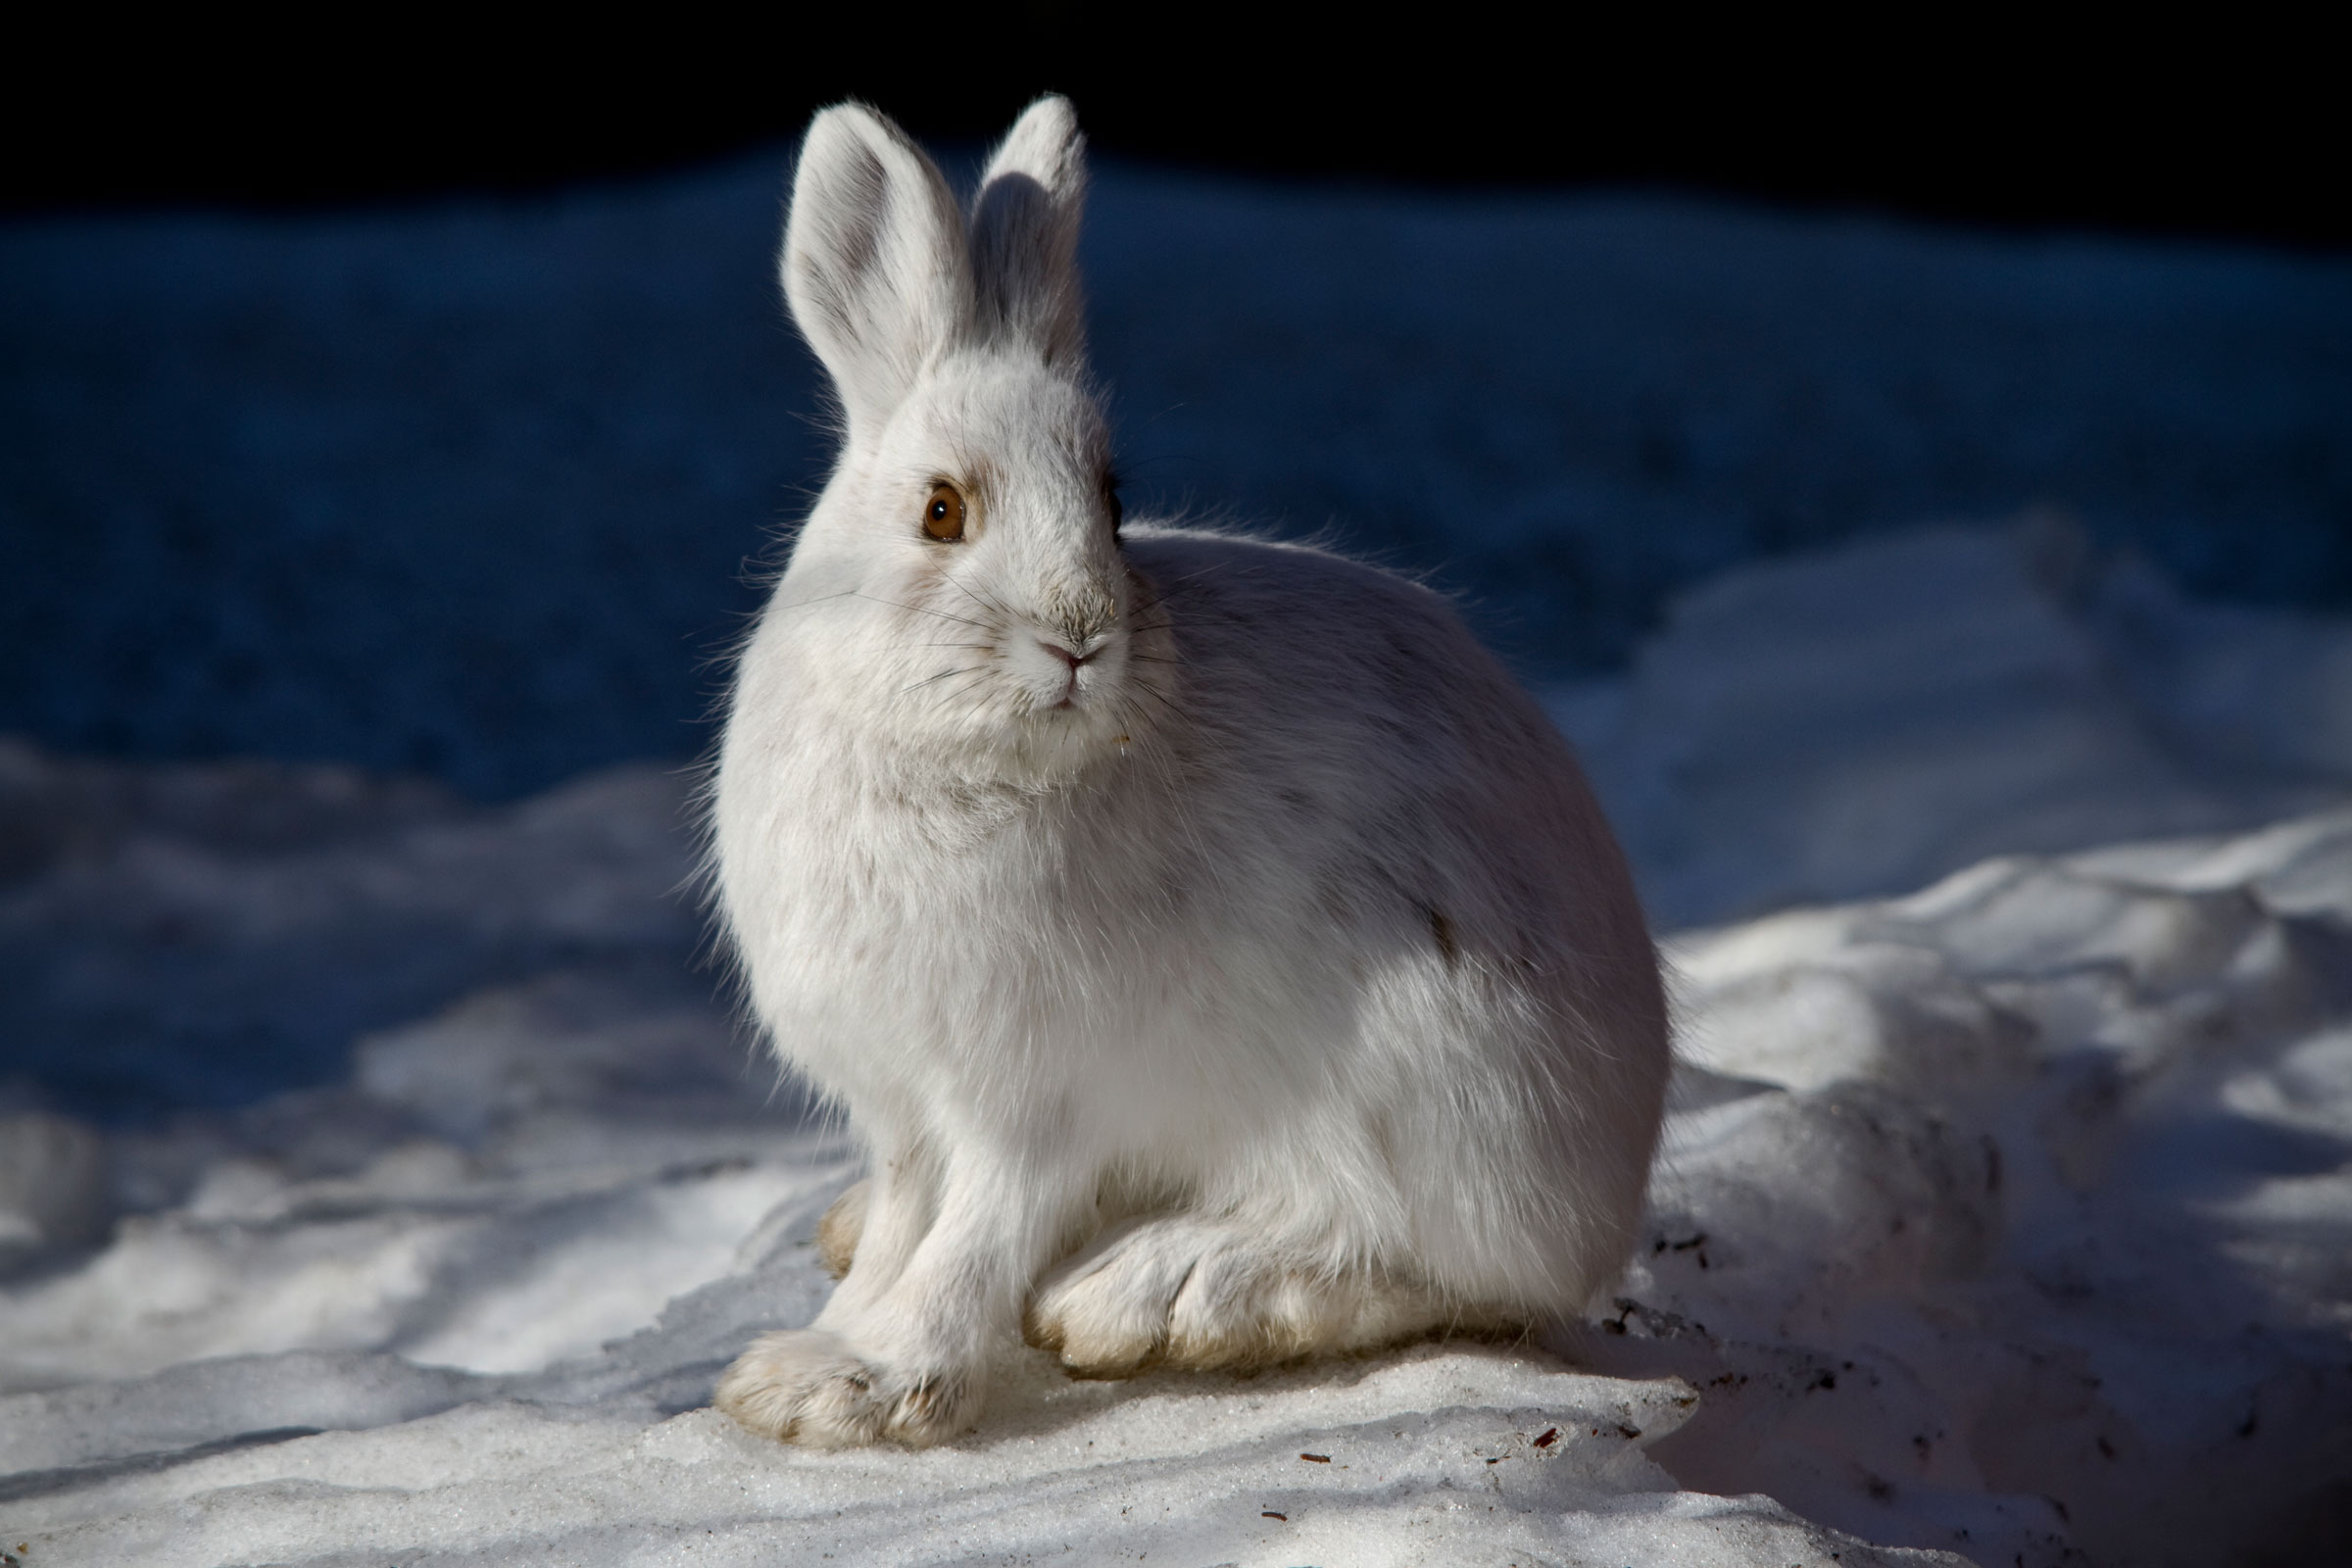 The ebb and flow of Goshawk irruptions could be tied to Snowshoe Hare population booms in Canada, but no definitive connection has been made yet. Jacob W. Frank/NPS Photo